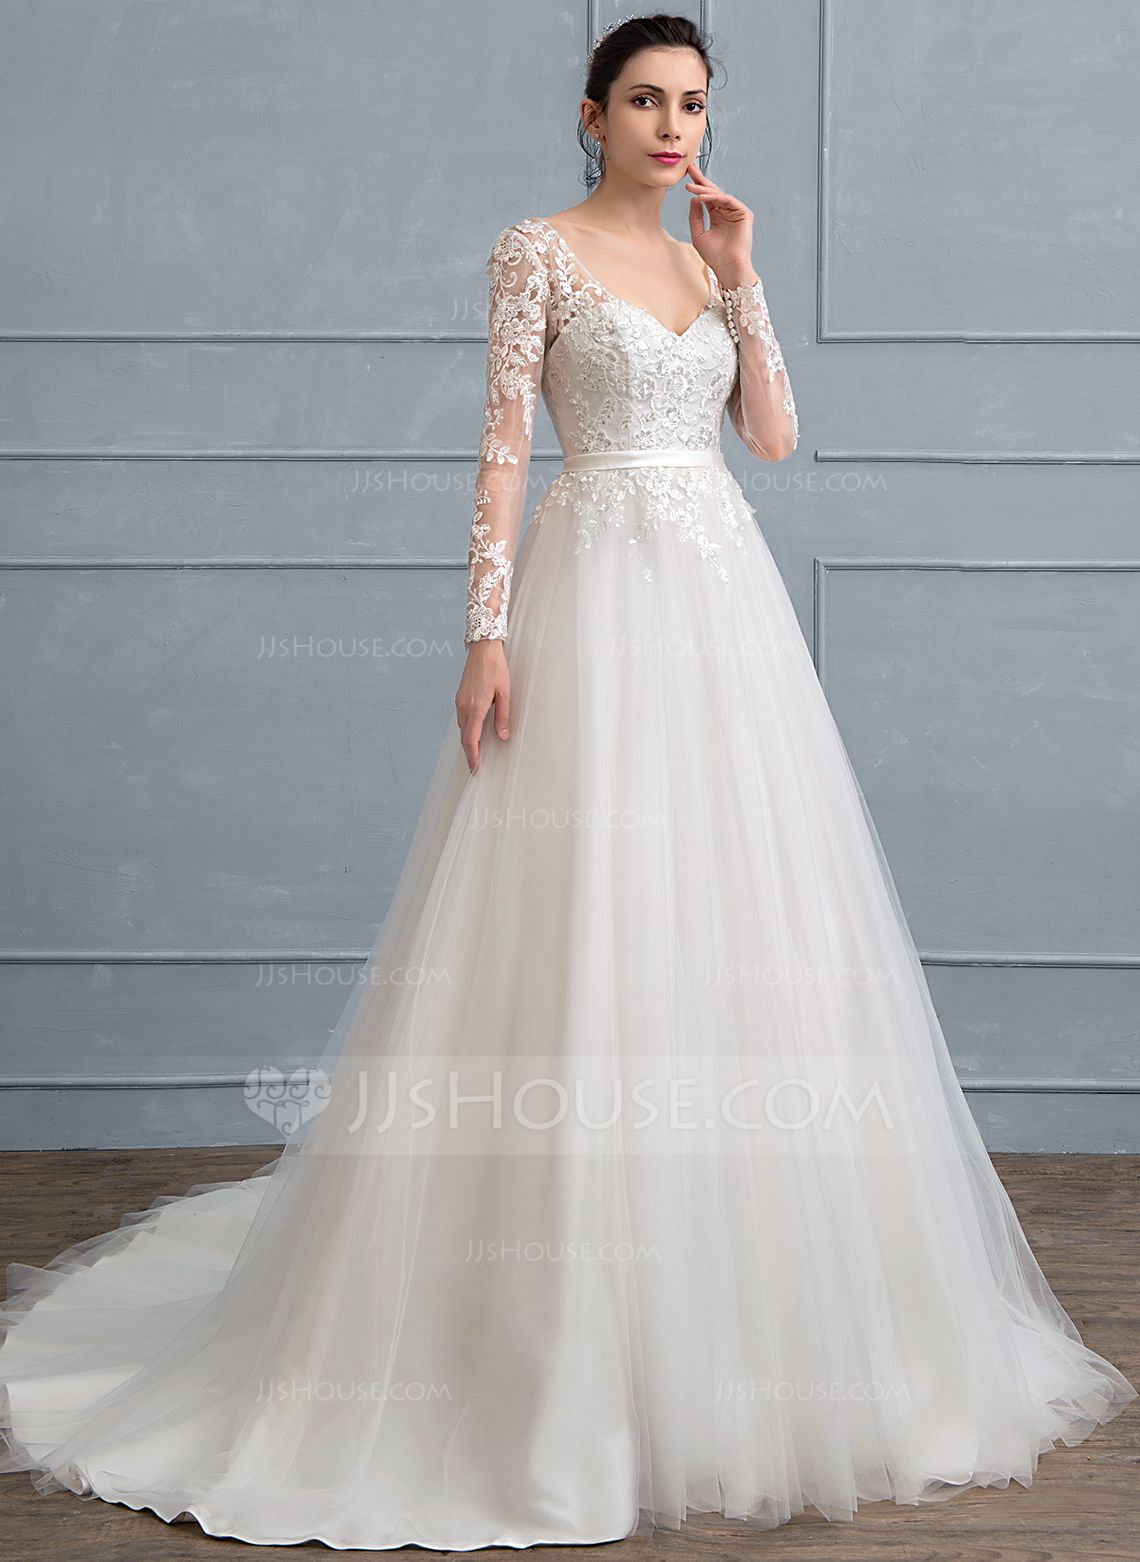 Us 203 00 Ball Gown V Neck Court Train Tulle Lace Wedding Dress With Sequins Jj S House Wedding Dresses Wedding Dresses Lace Online Wedding Dress